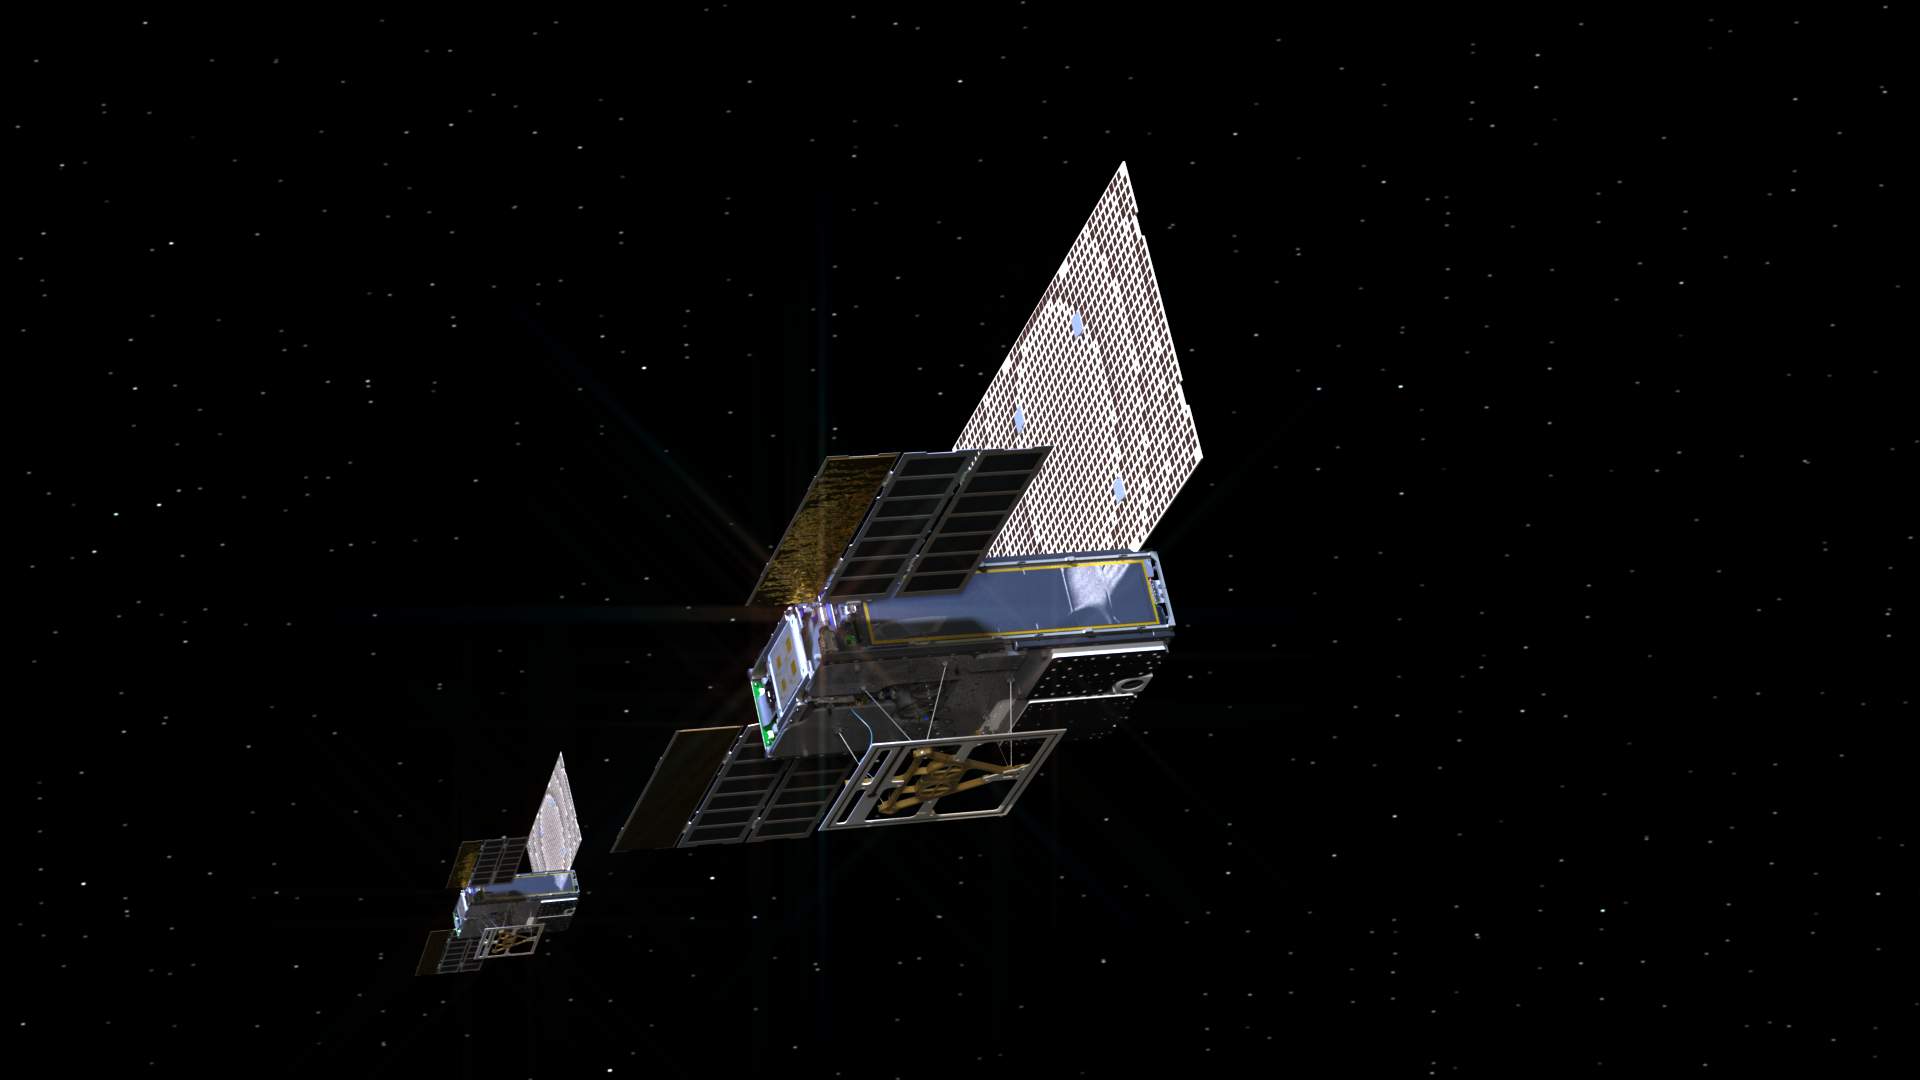 Artist's illustration of MarCo cubesats in space.